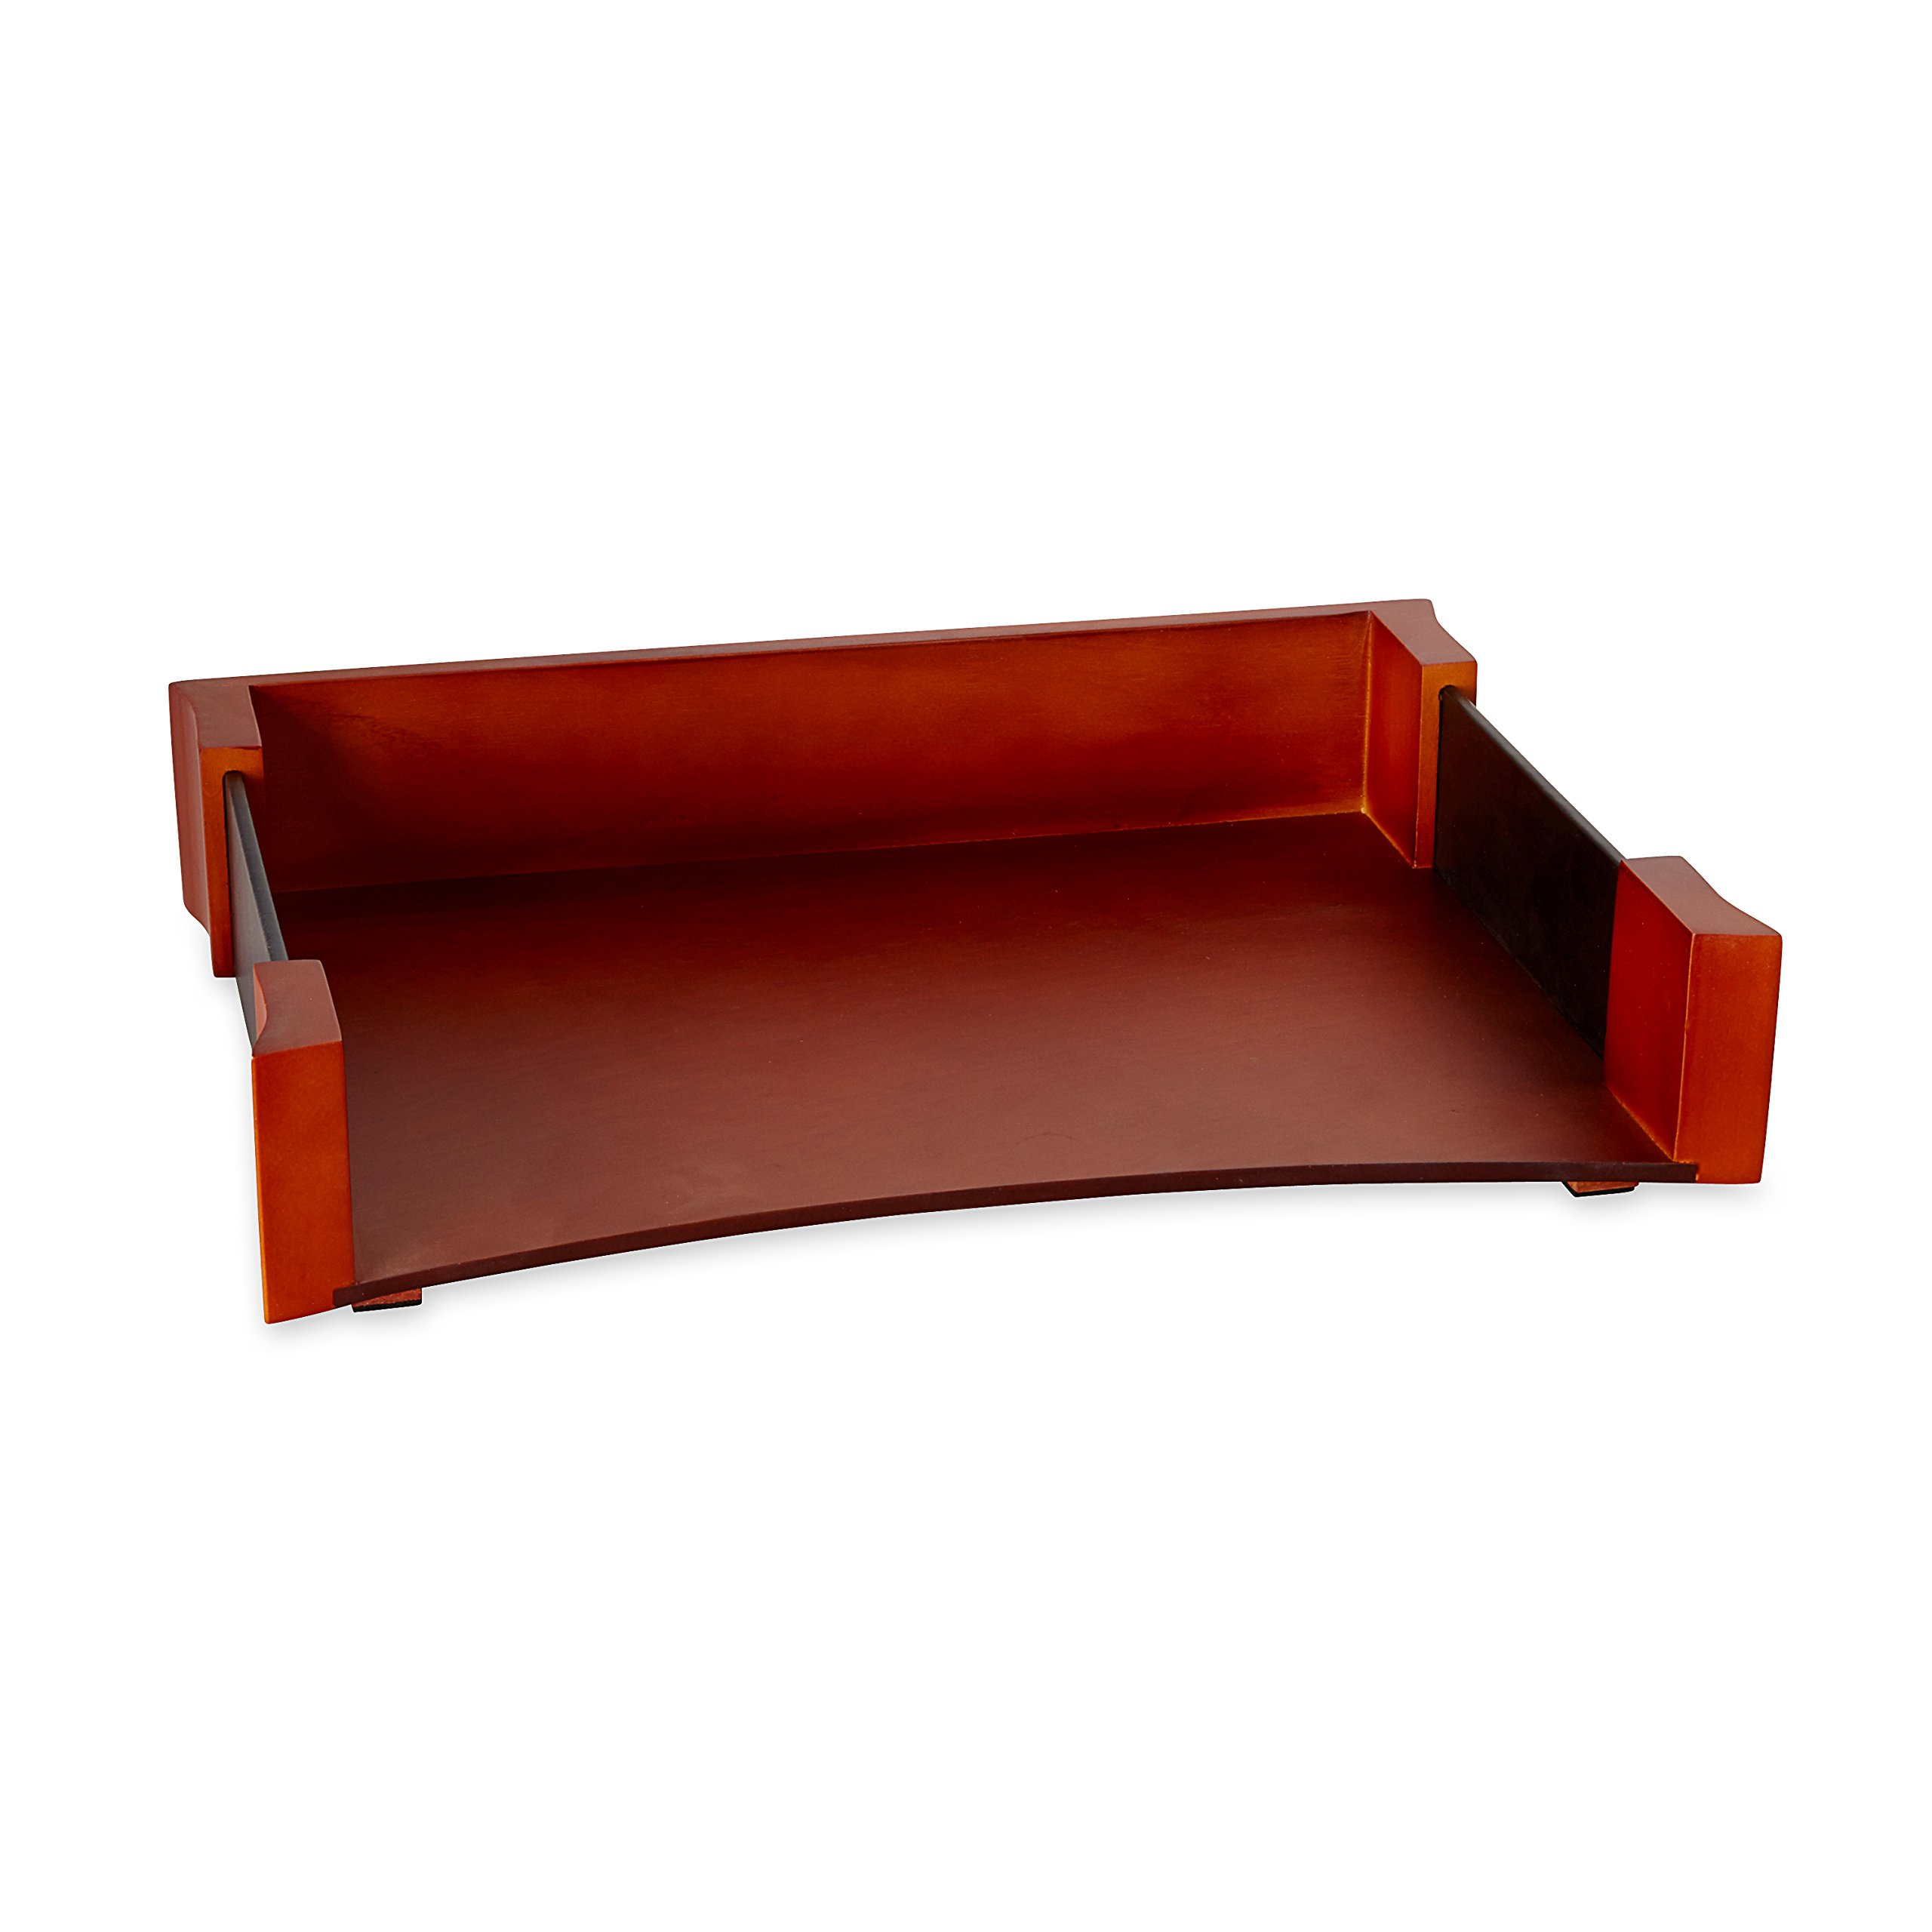 Rolodex Wood and Faux Leather Letter Tray, Letter-Size, Mahogany and Black (81759)